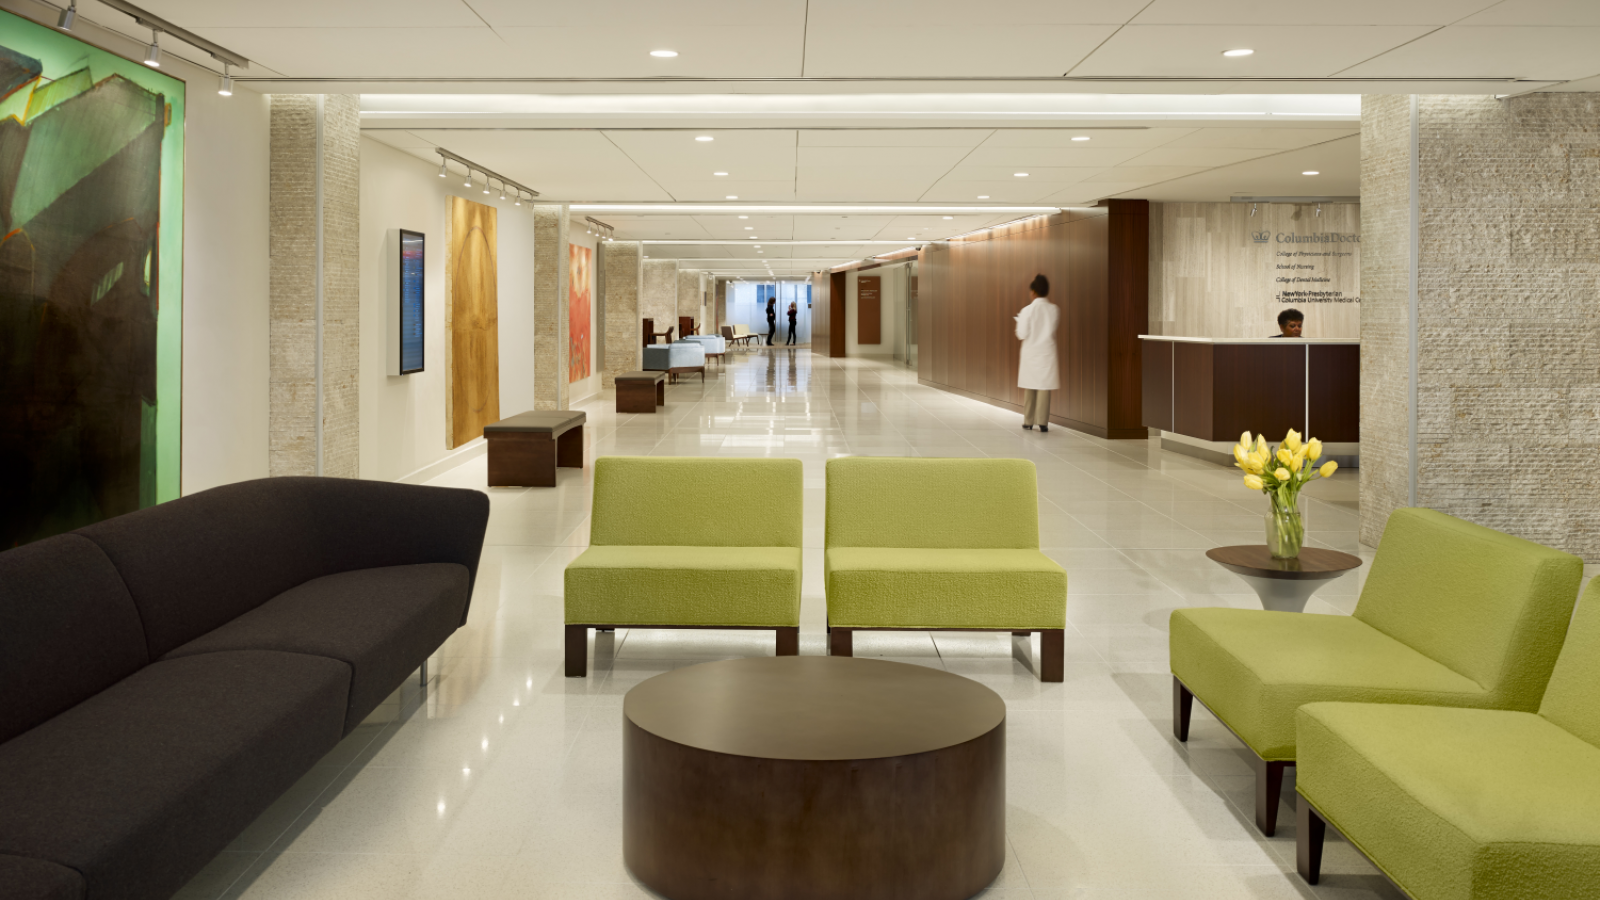 ColumbiaDoctors Sites | Vagelos College of Physicians and Surgeons